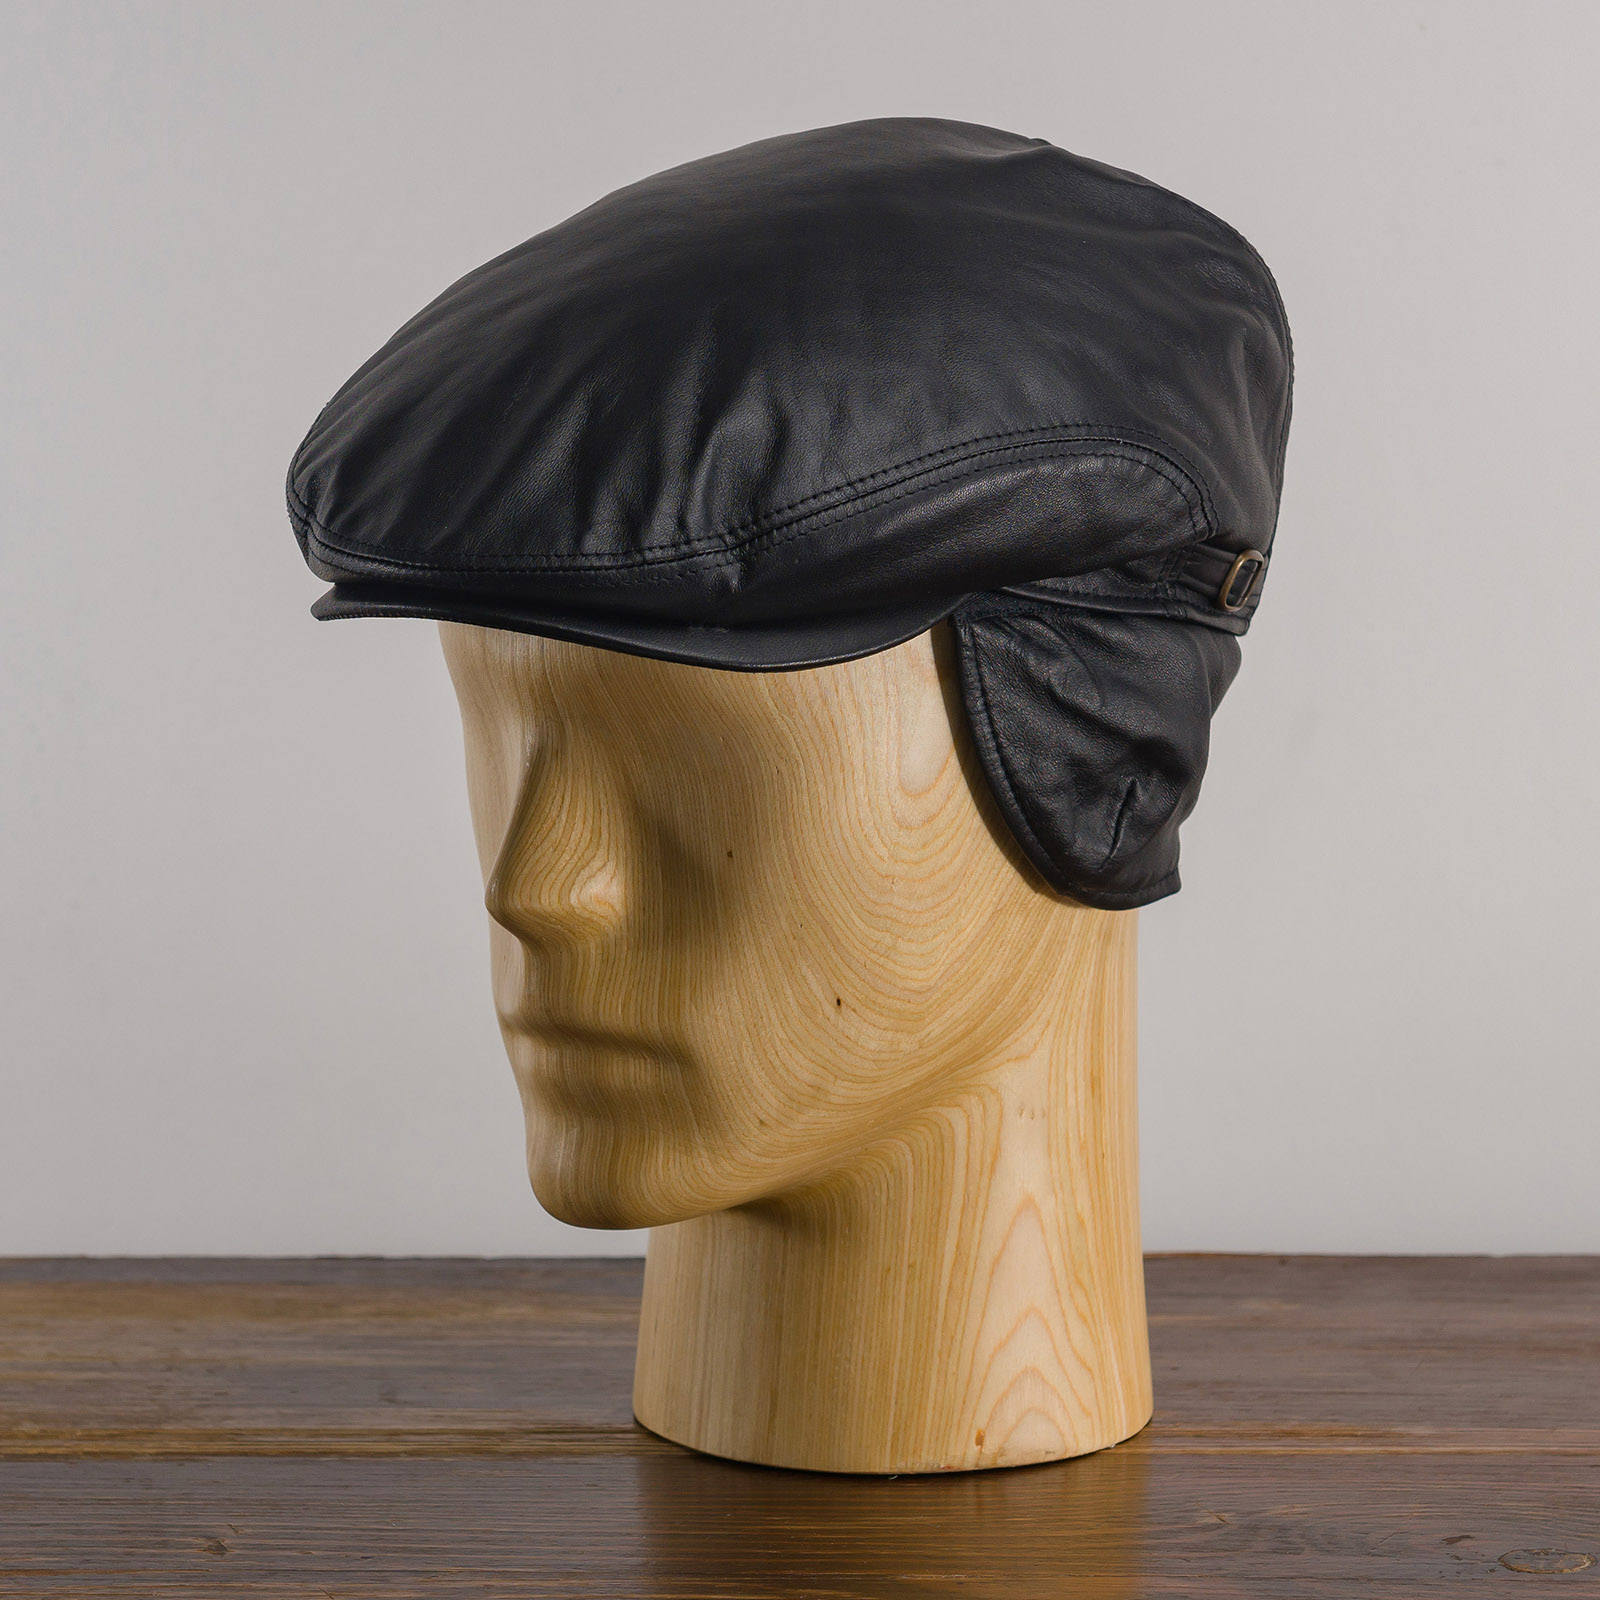 Natural leather flat cap with foldable earflap ivy league ear tabs Gatsby skin hat